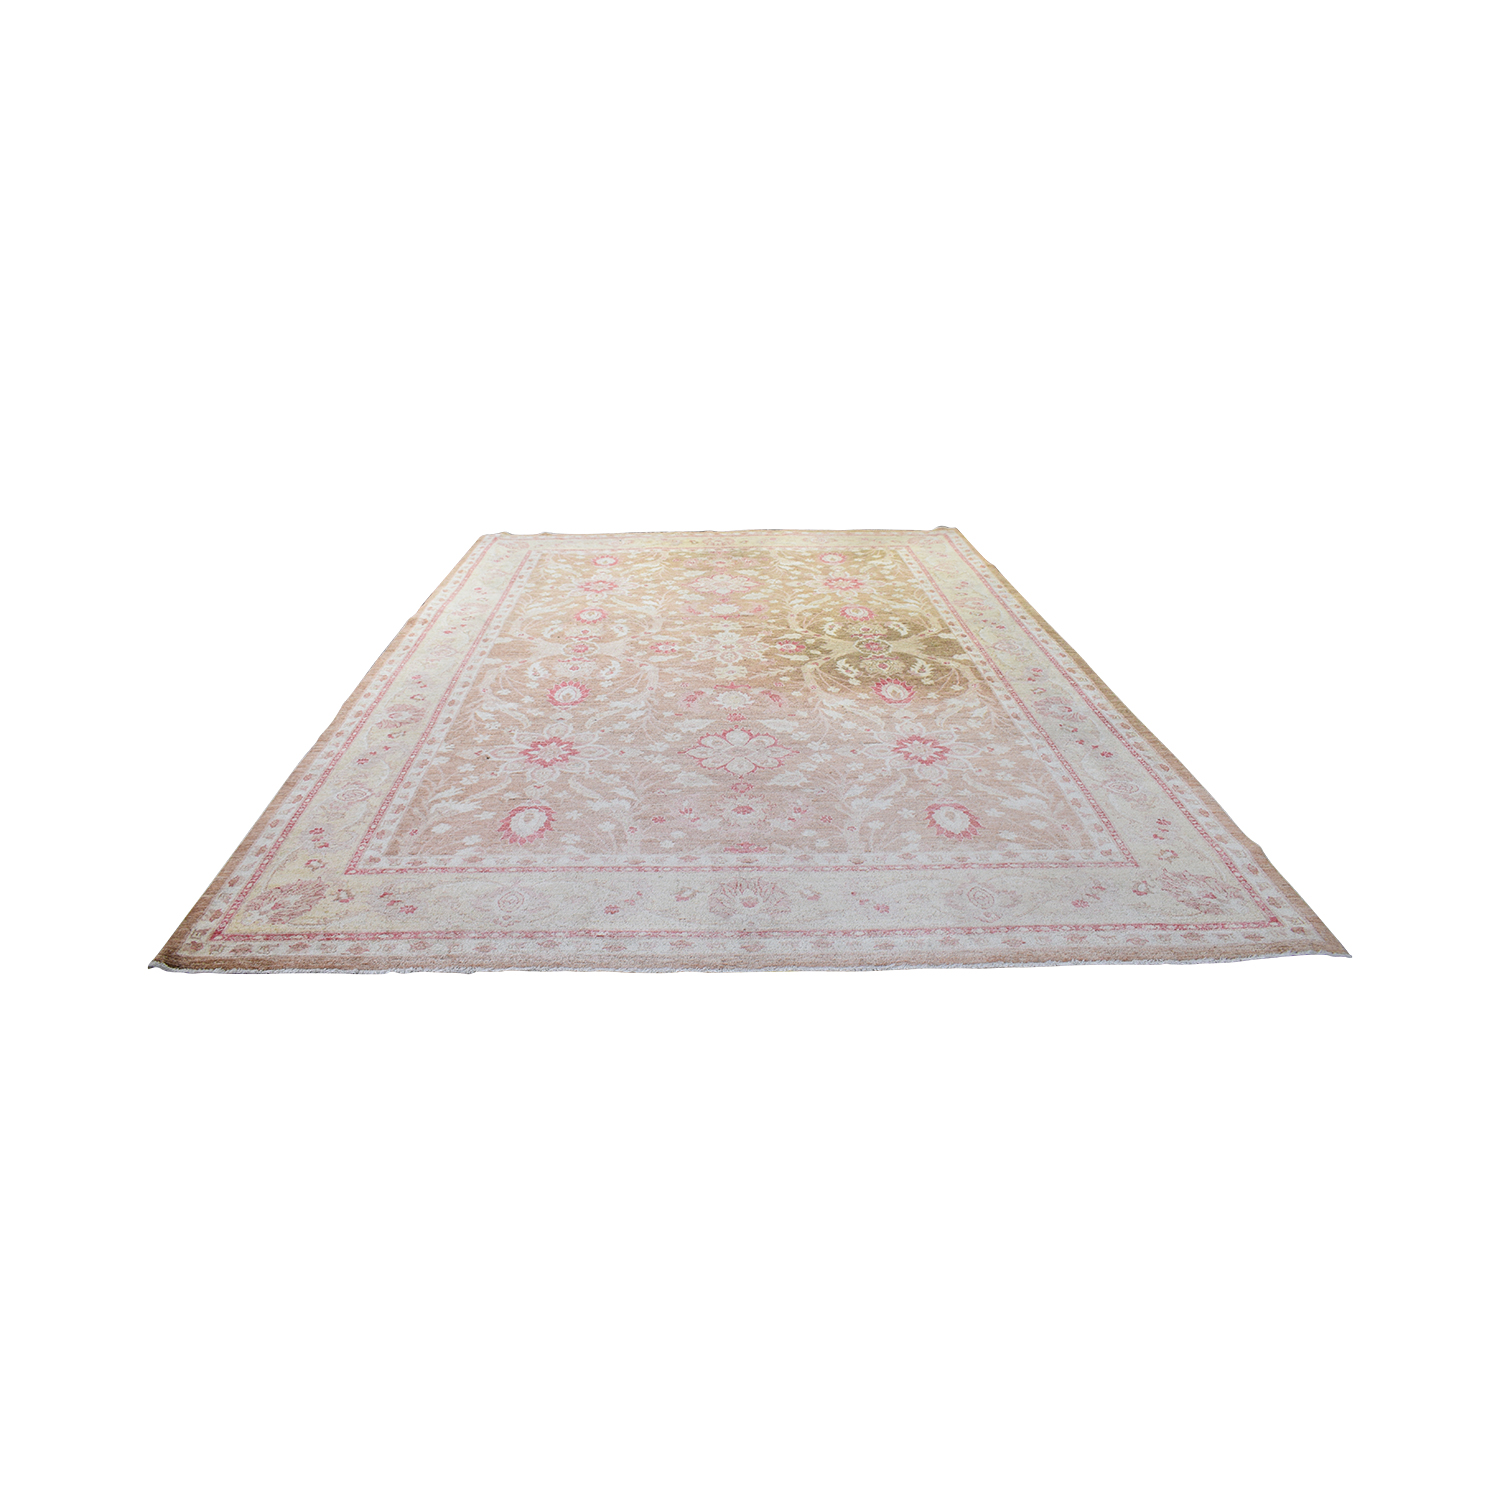 Oriental Decorative Rug